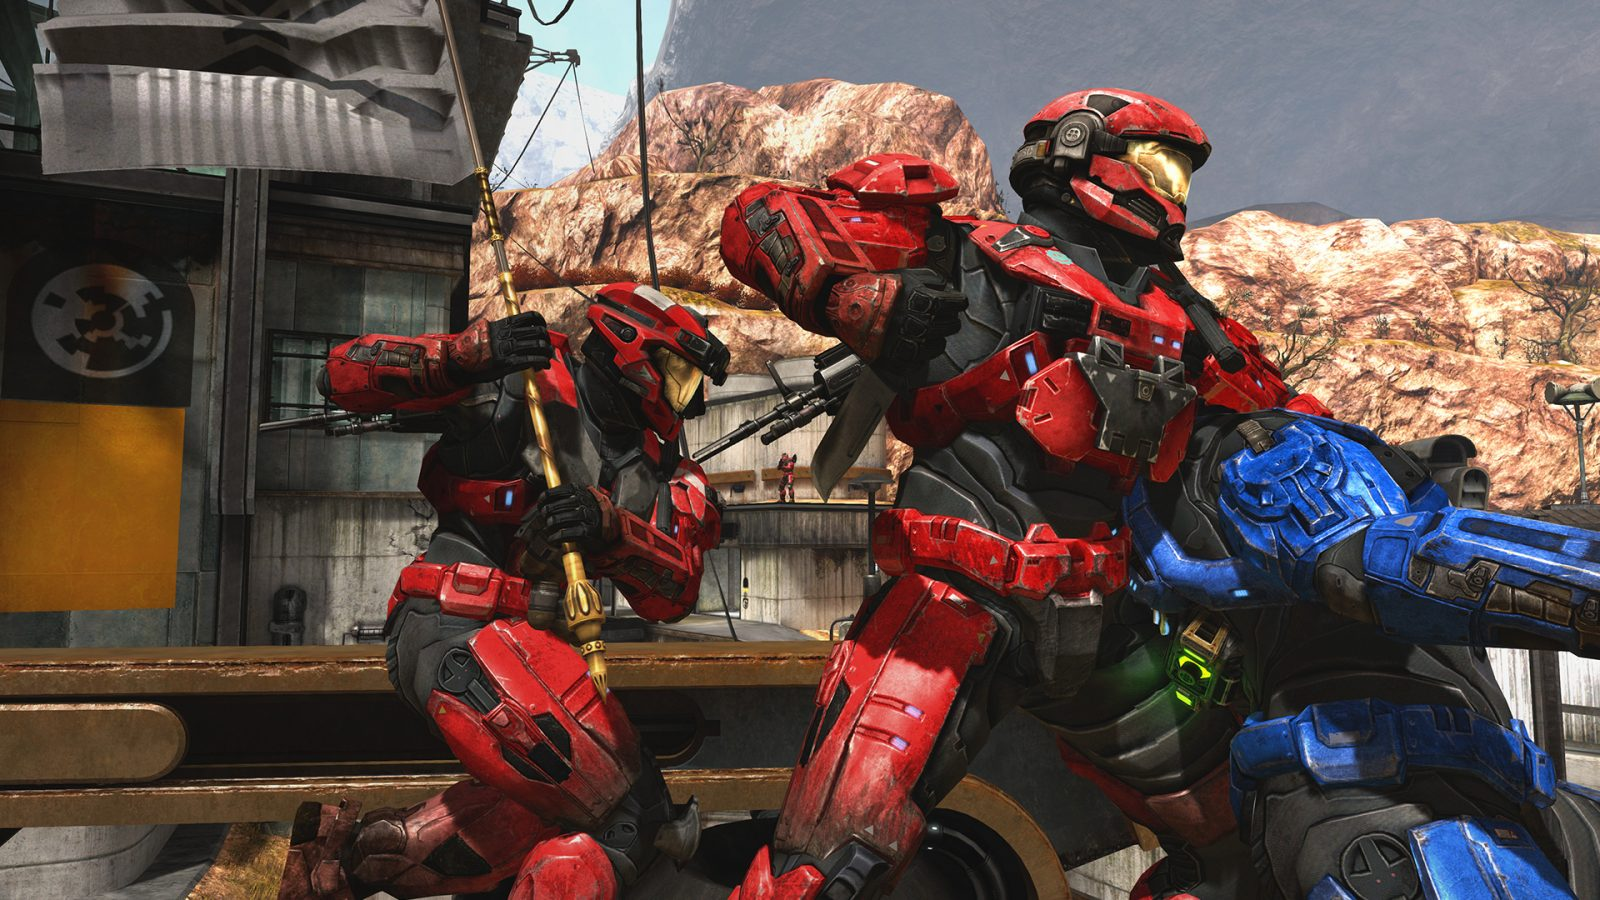 Halo Reach player count instantly exceeds 100,000 on Steam